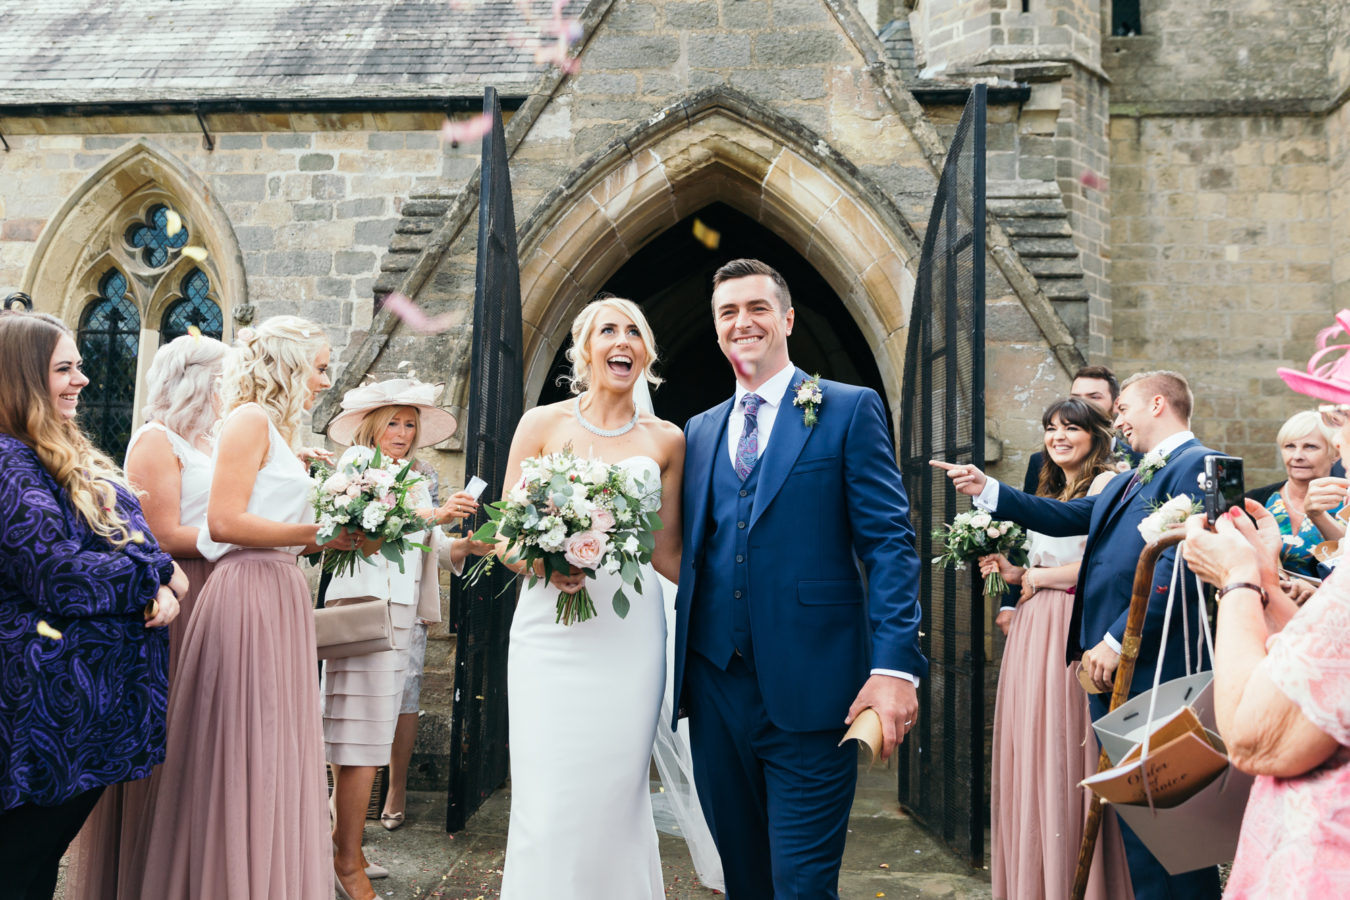 Goldsborough church wedding photographer